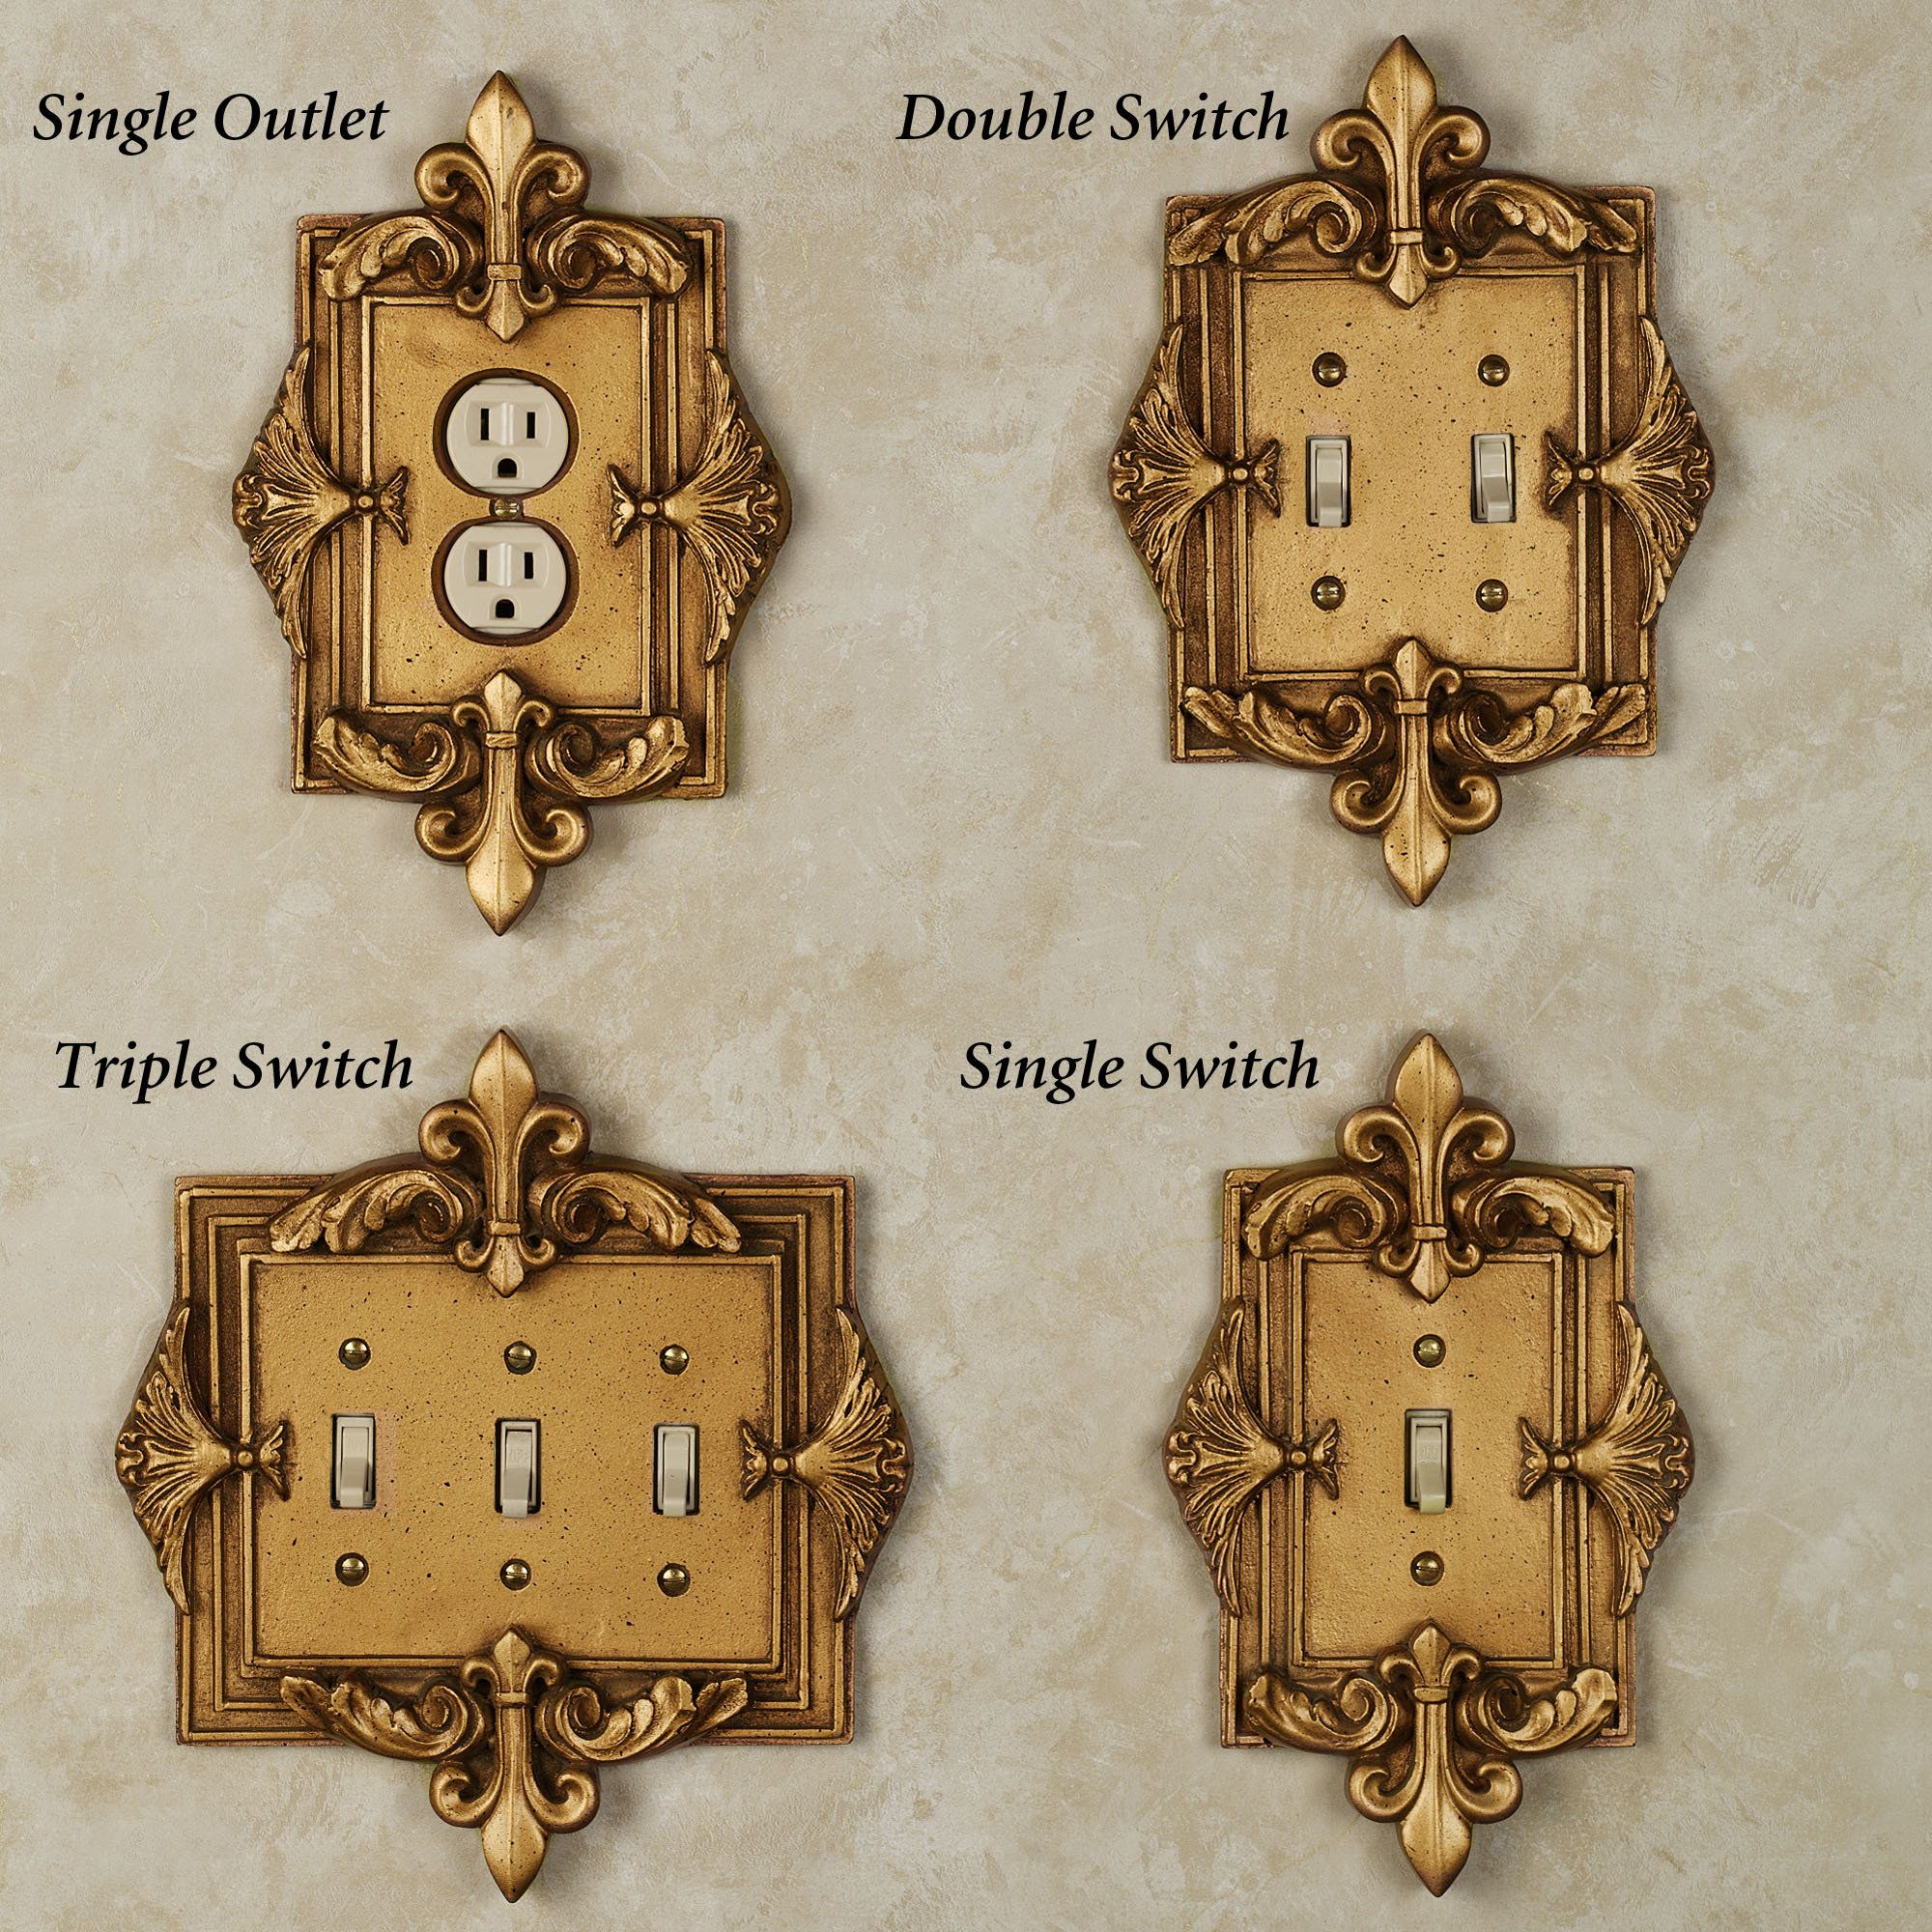 electrical wall plate covers decorative electrical wall.htm fleurance large switchplates gold bedroom decor  light switch  fleurance large switchplates gold